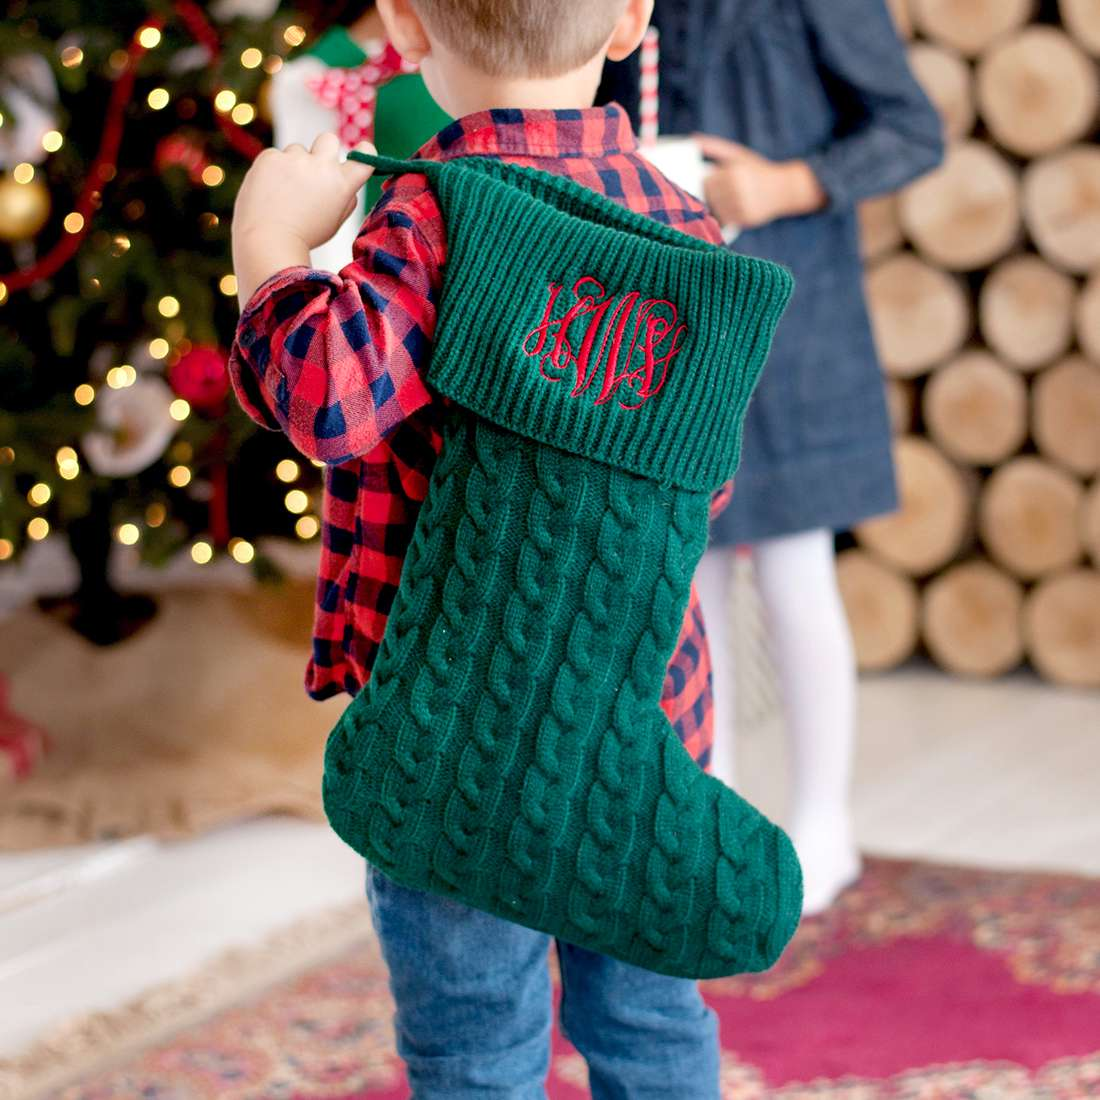 Cable Knit Christmas Stockings.Personalized Cable Knit Stockings For Christmas Hunter Green